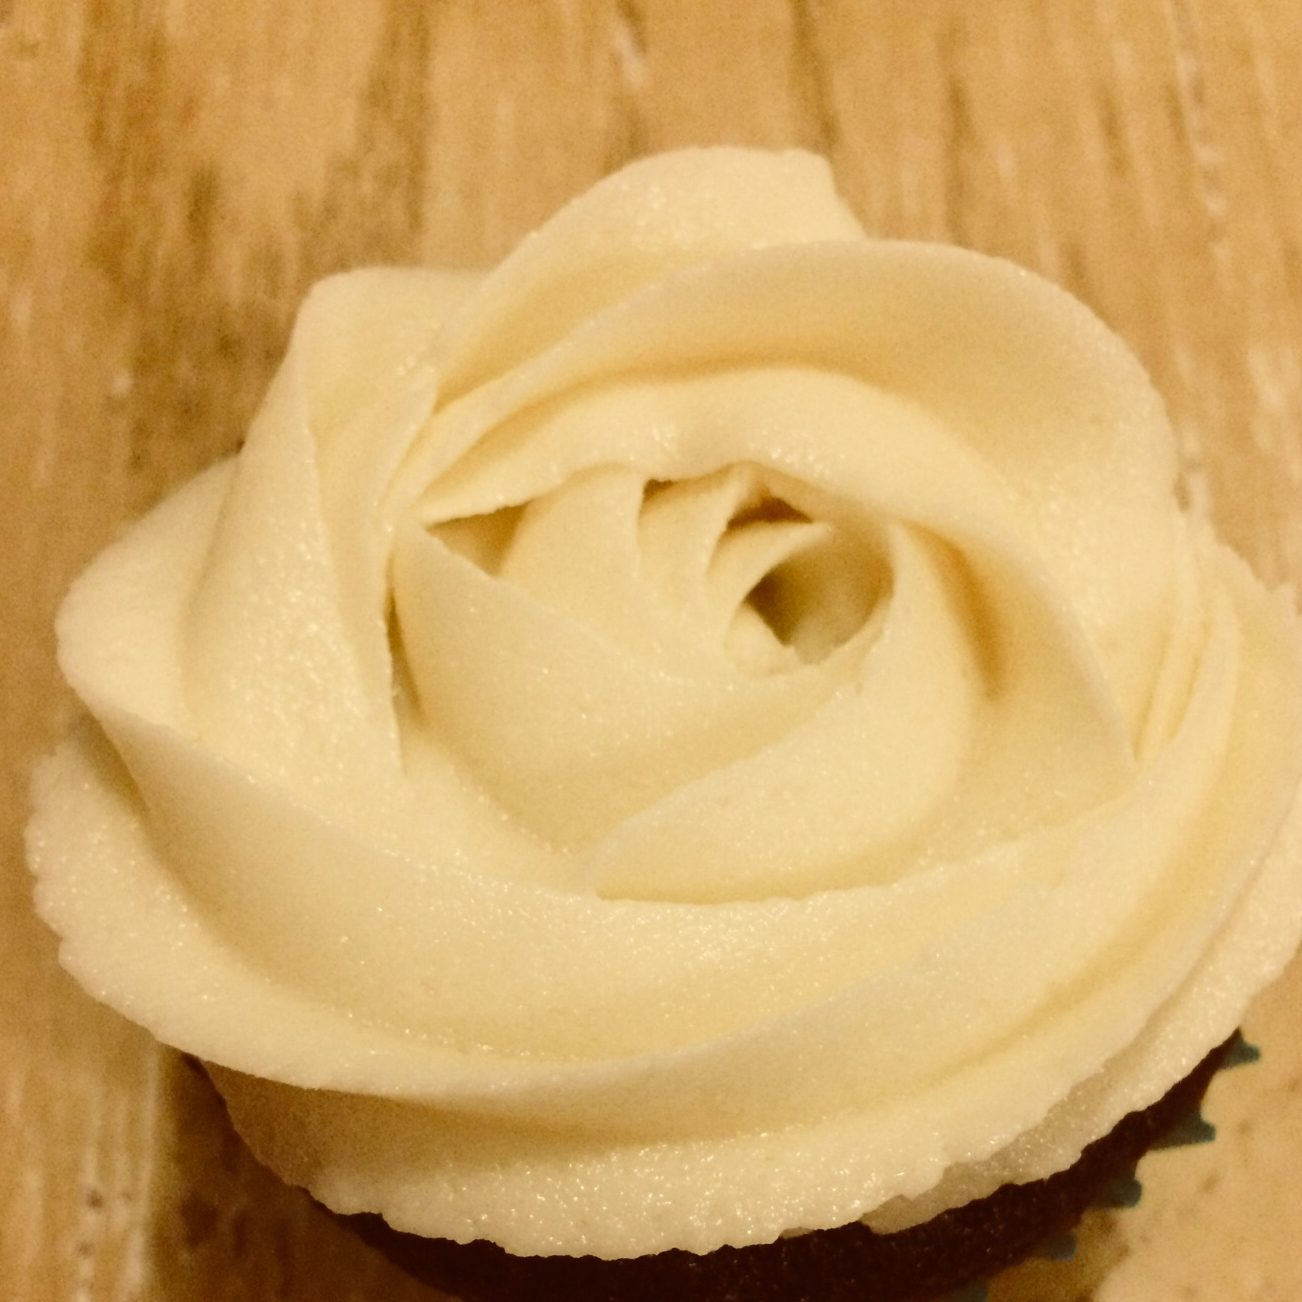 Vegan Chocolate Cupcakes with Vanilla Frosting Sheccid12